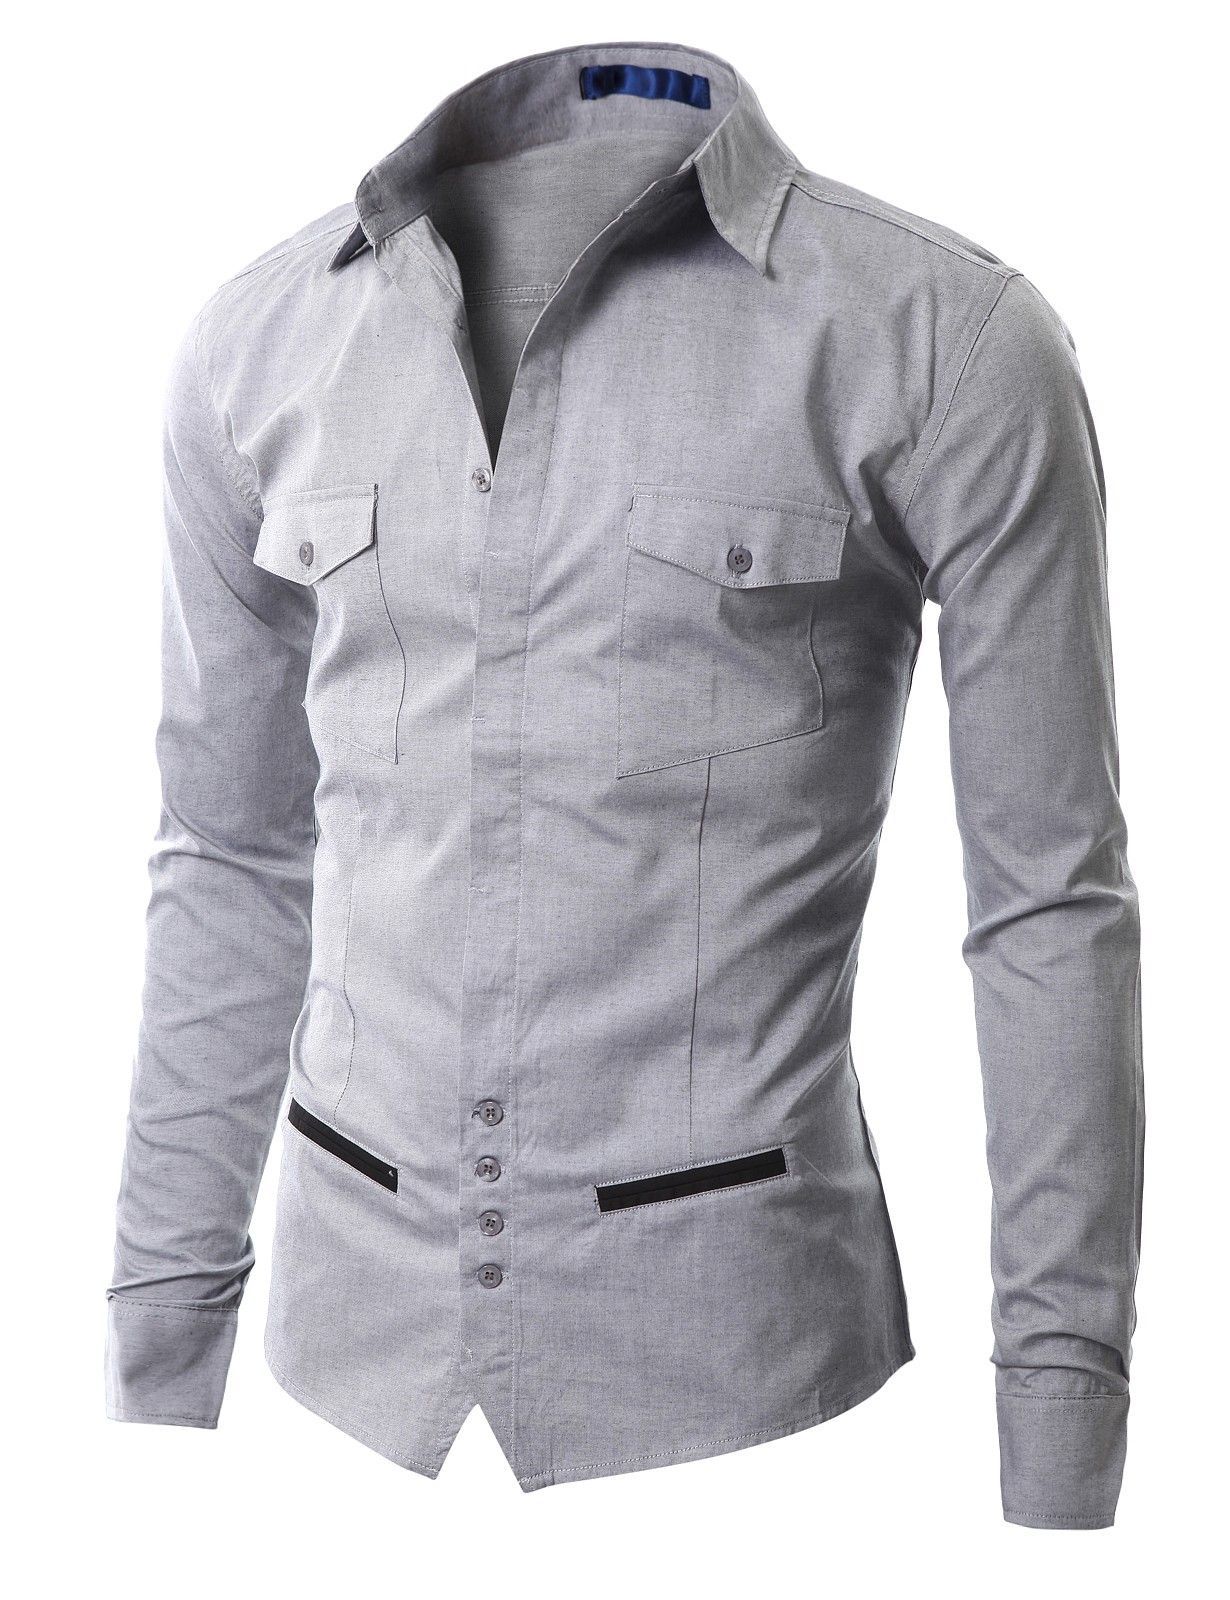 78fd48c8 Mens Casual Unique design Dress Shirts (AAK01) | T-Shirts | Shirts ...